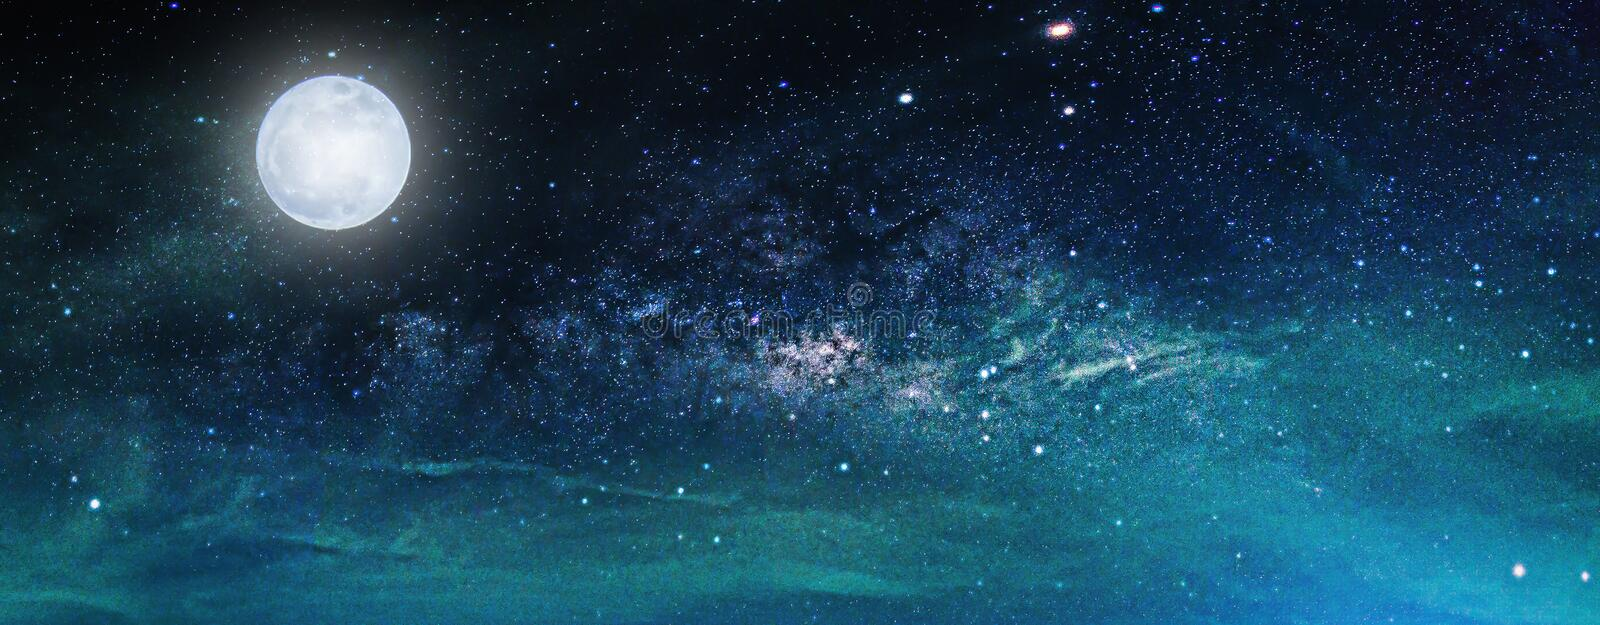 Landscape with Milky way galaxy. Night sky with stars royalty free stock images